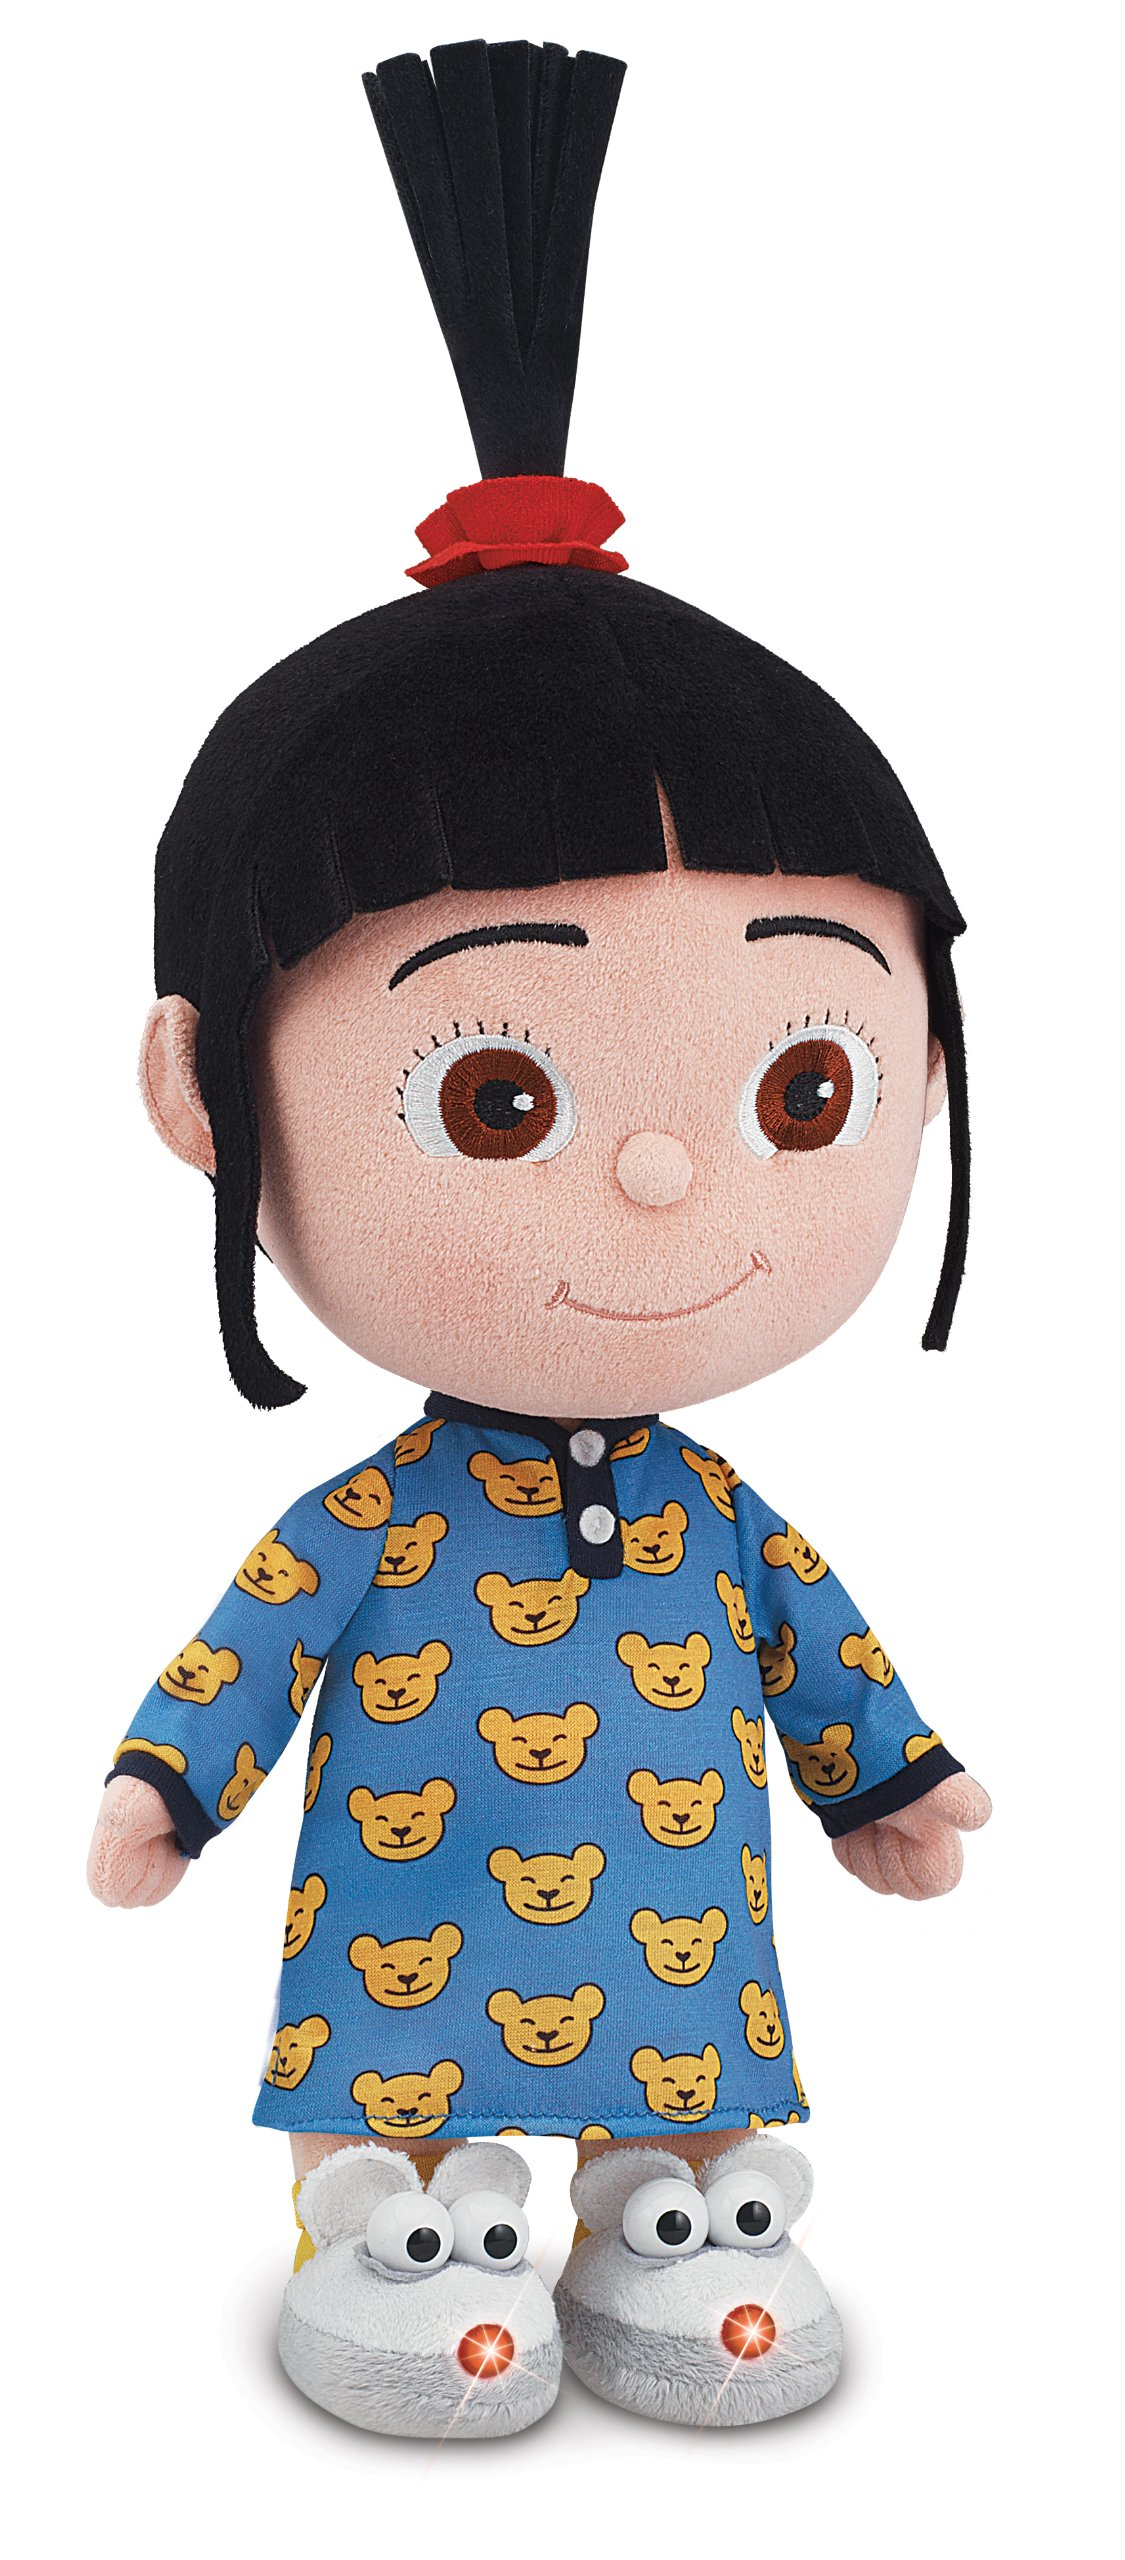 Toys For Bedtime : Galleon despicable me bedtime agnes plush